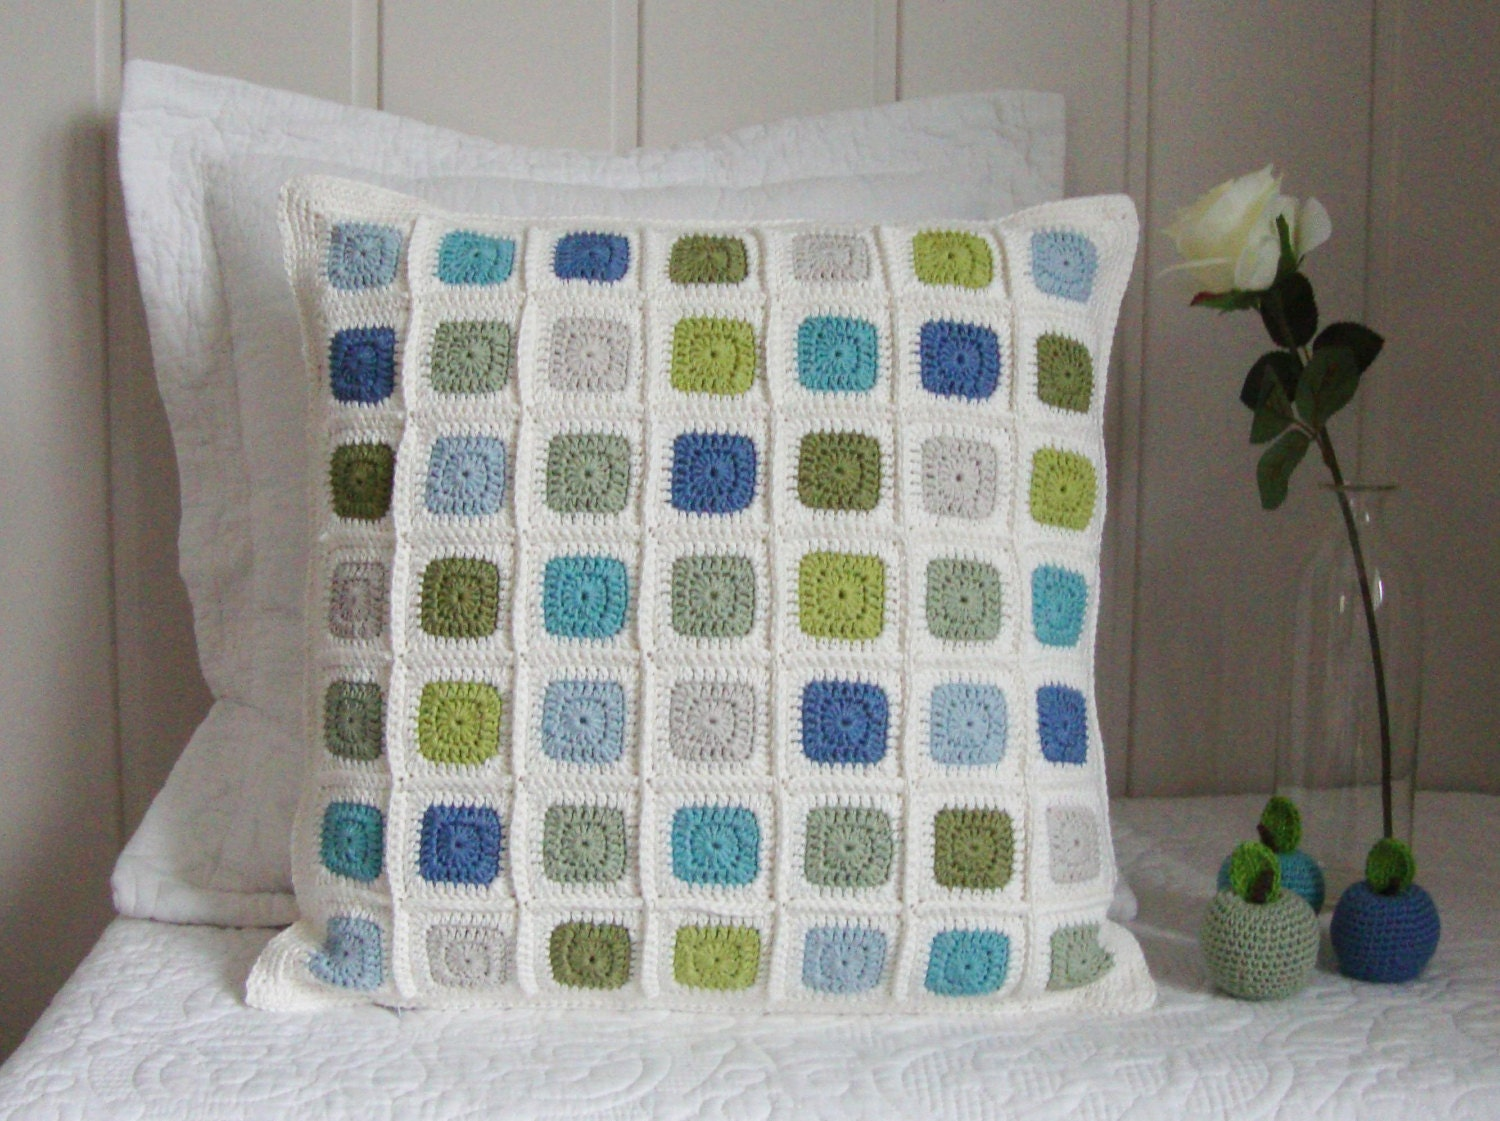 Modern Patchwork Pillow : Crochet pillow cover modern geometric patchwork mosaic in